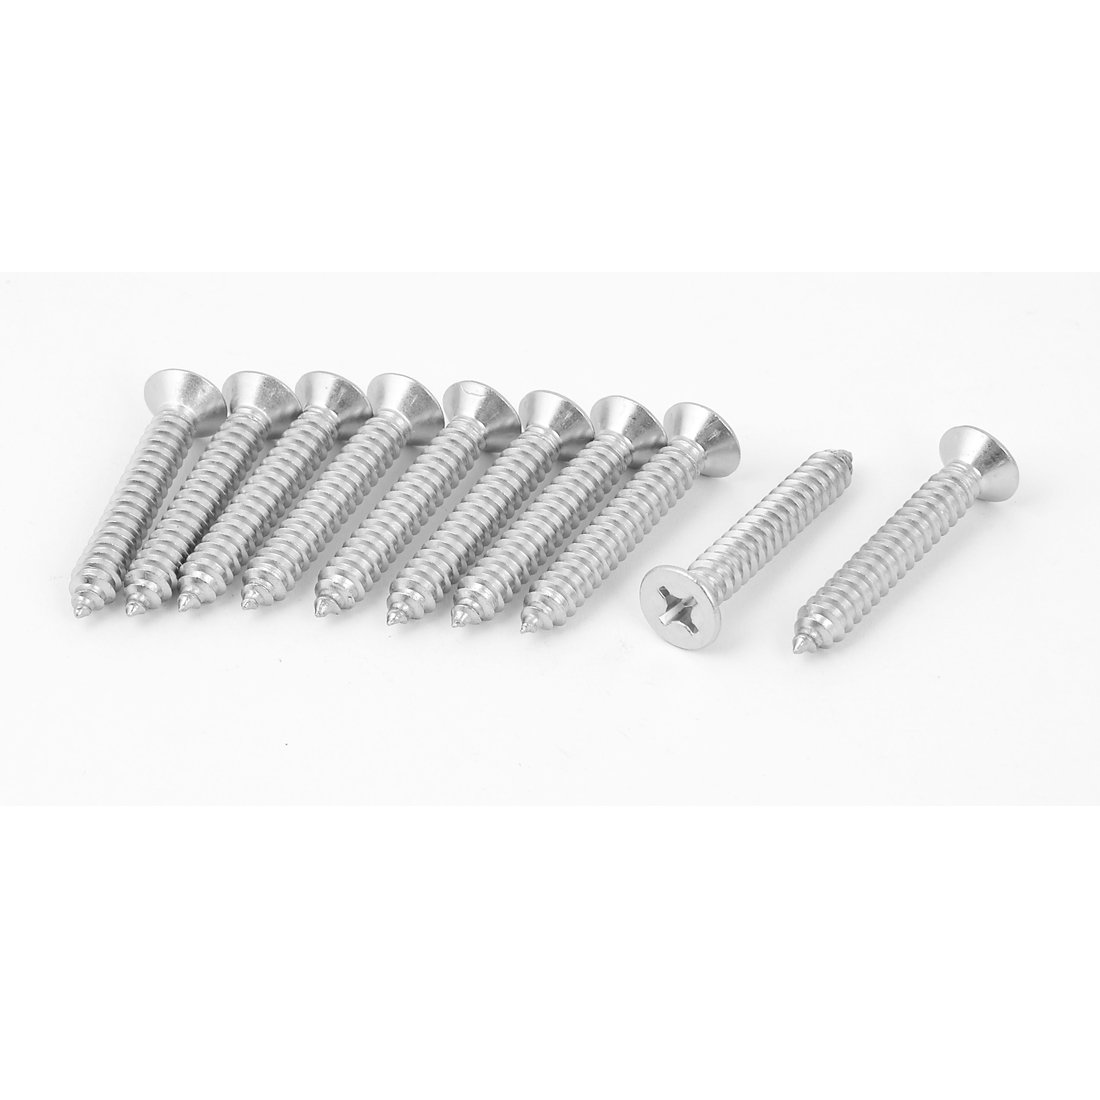 M6.3 x 40mm Cross Head Countersunk Self Tapping Screw Silver Tone 10 Pcs